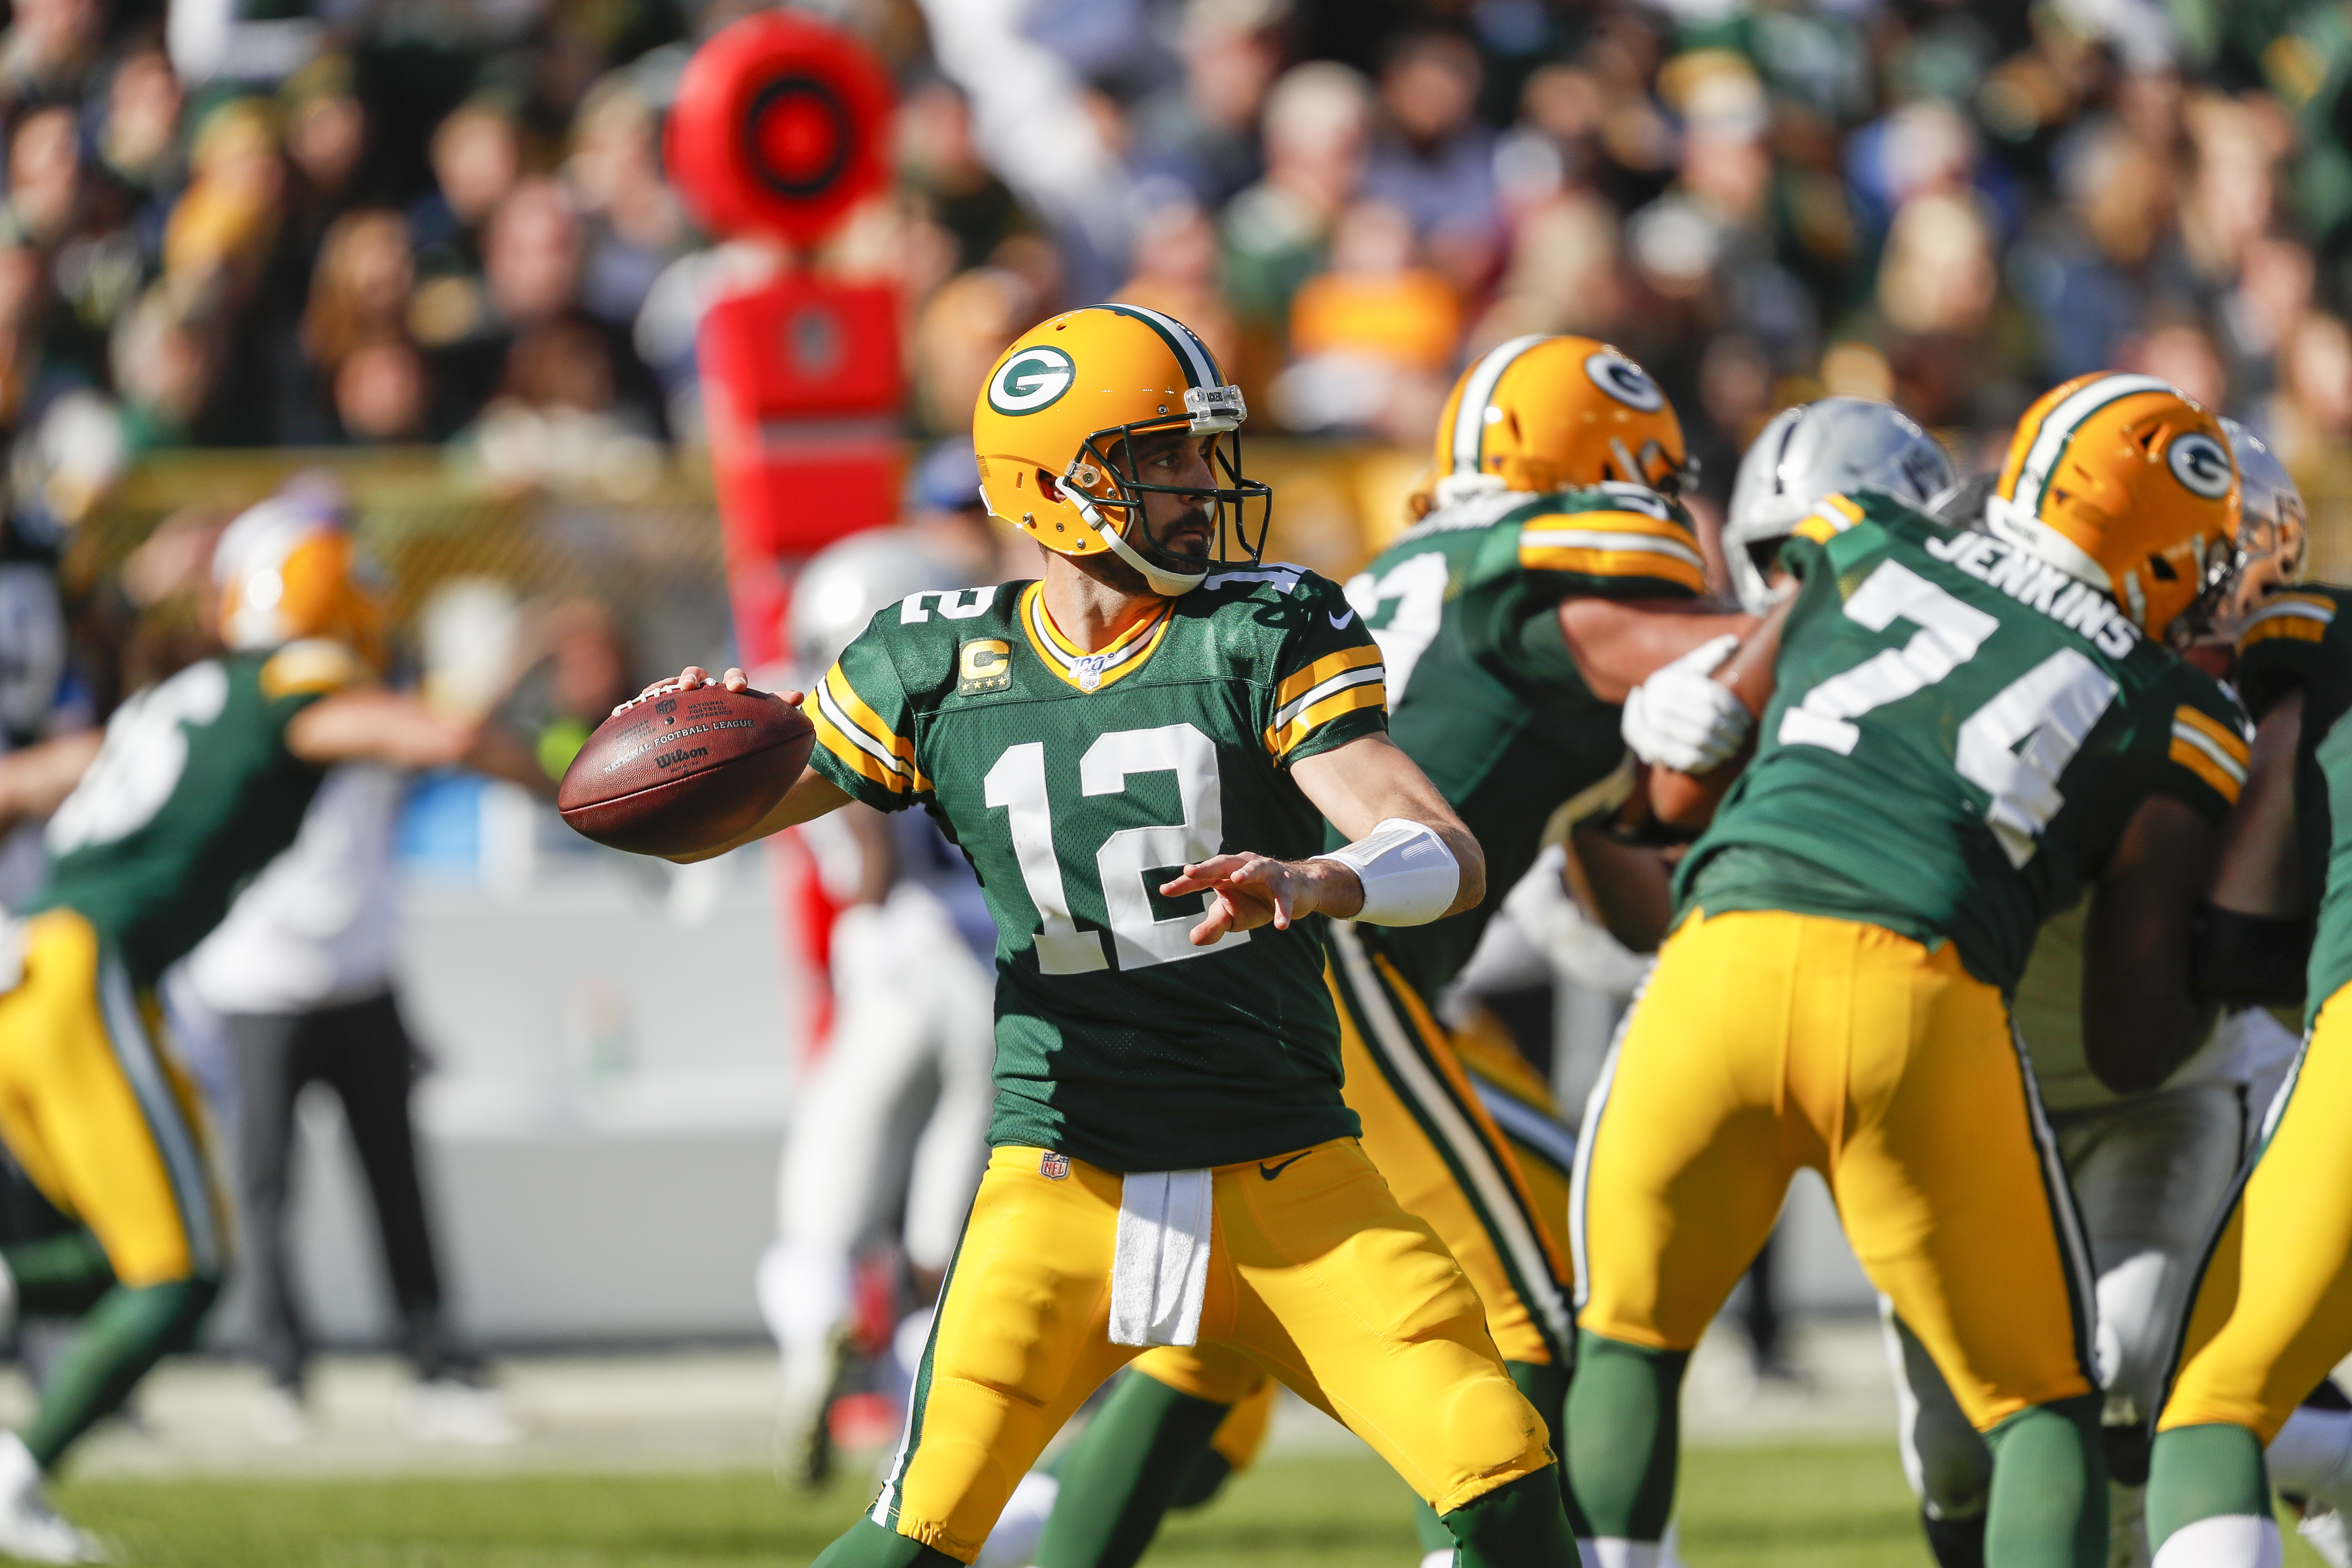 Nfl Week 8 Picks Predictions Point Spreads Betting Lines For Every Game Packers Patriots Seahawks Bears Saints 49ers More Nj Com